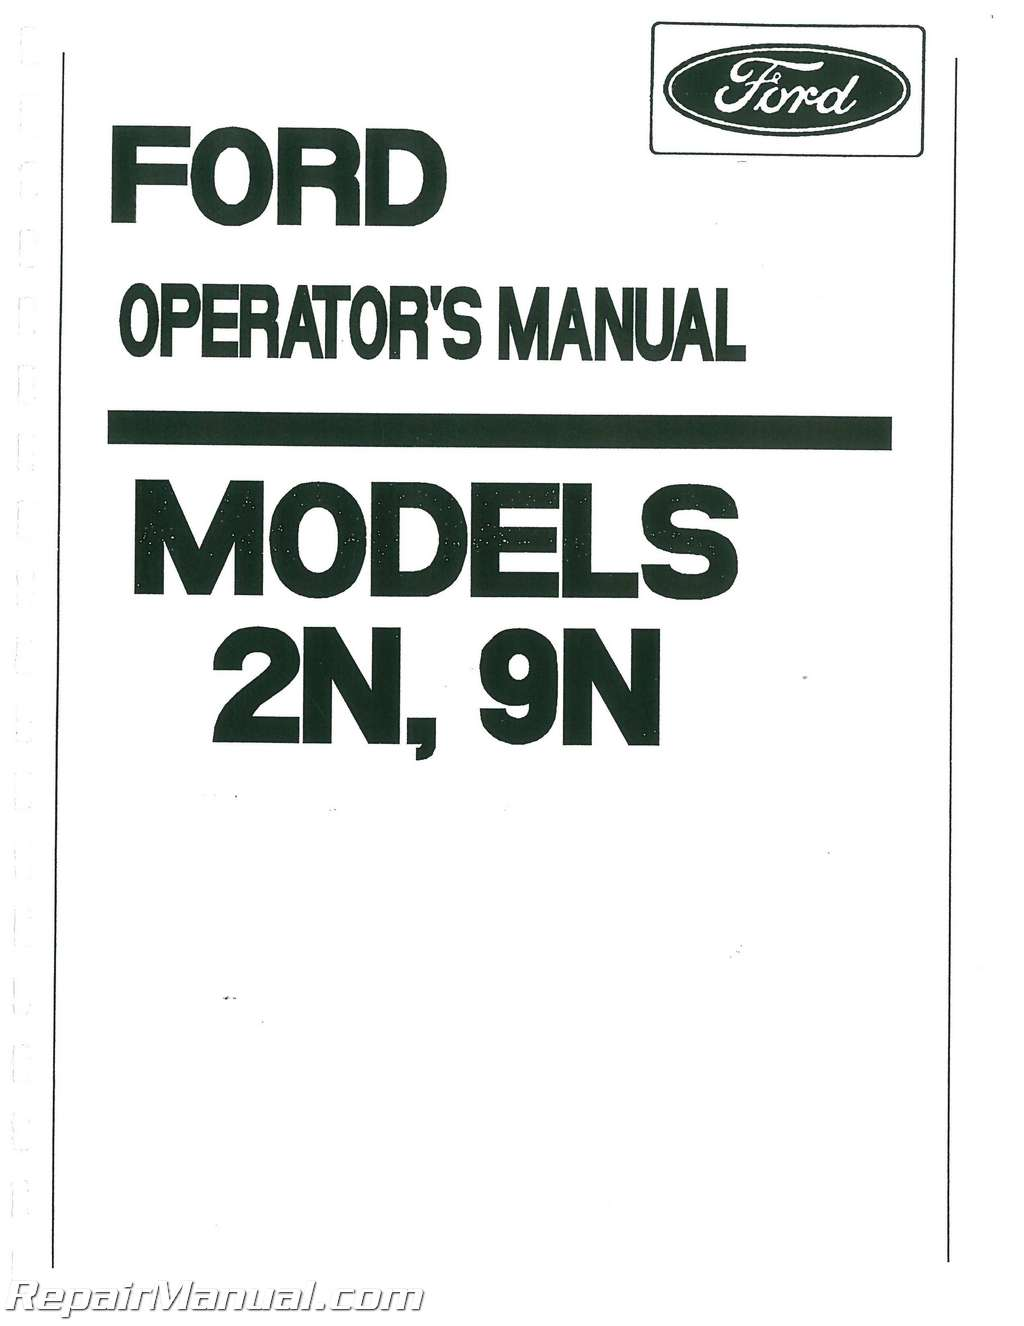 ford 2n 9n tractor operators manual rh repairmanual com ford 2n service manual pdf ford 9n service manual